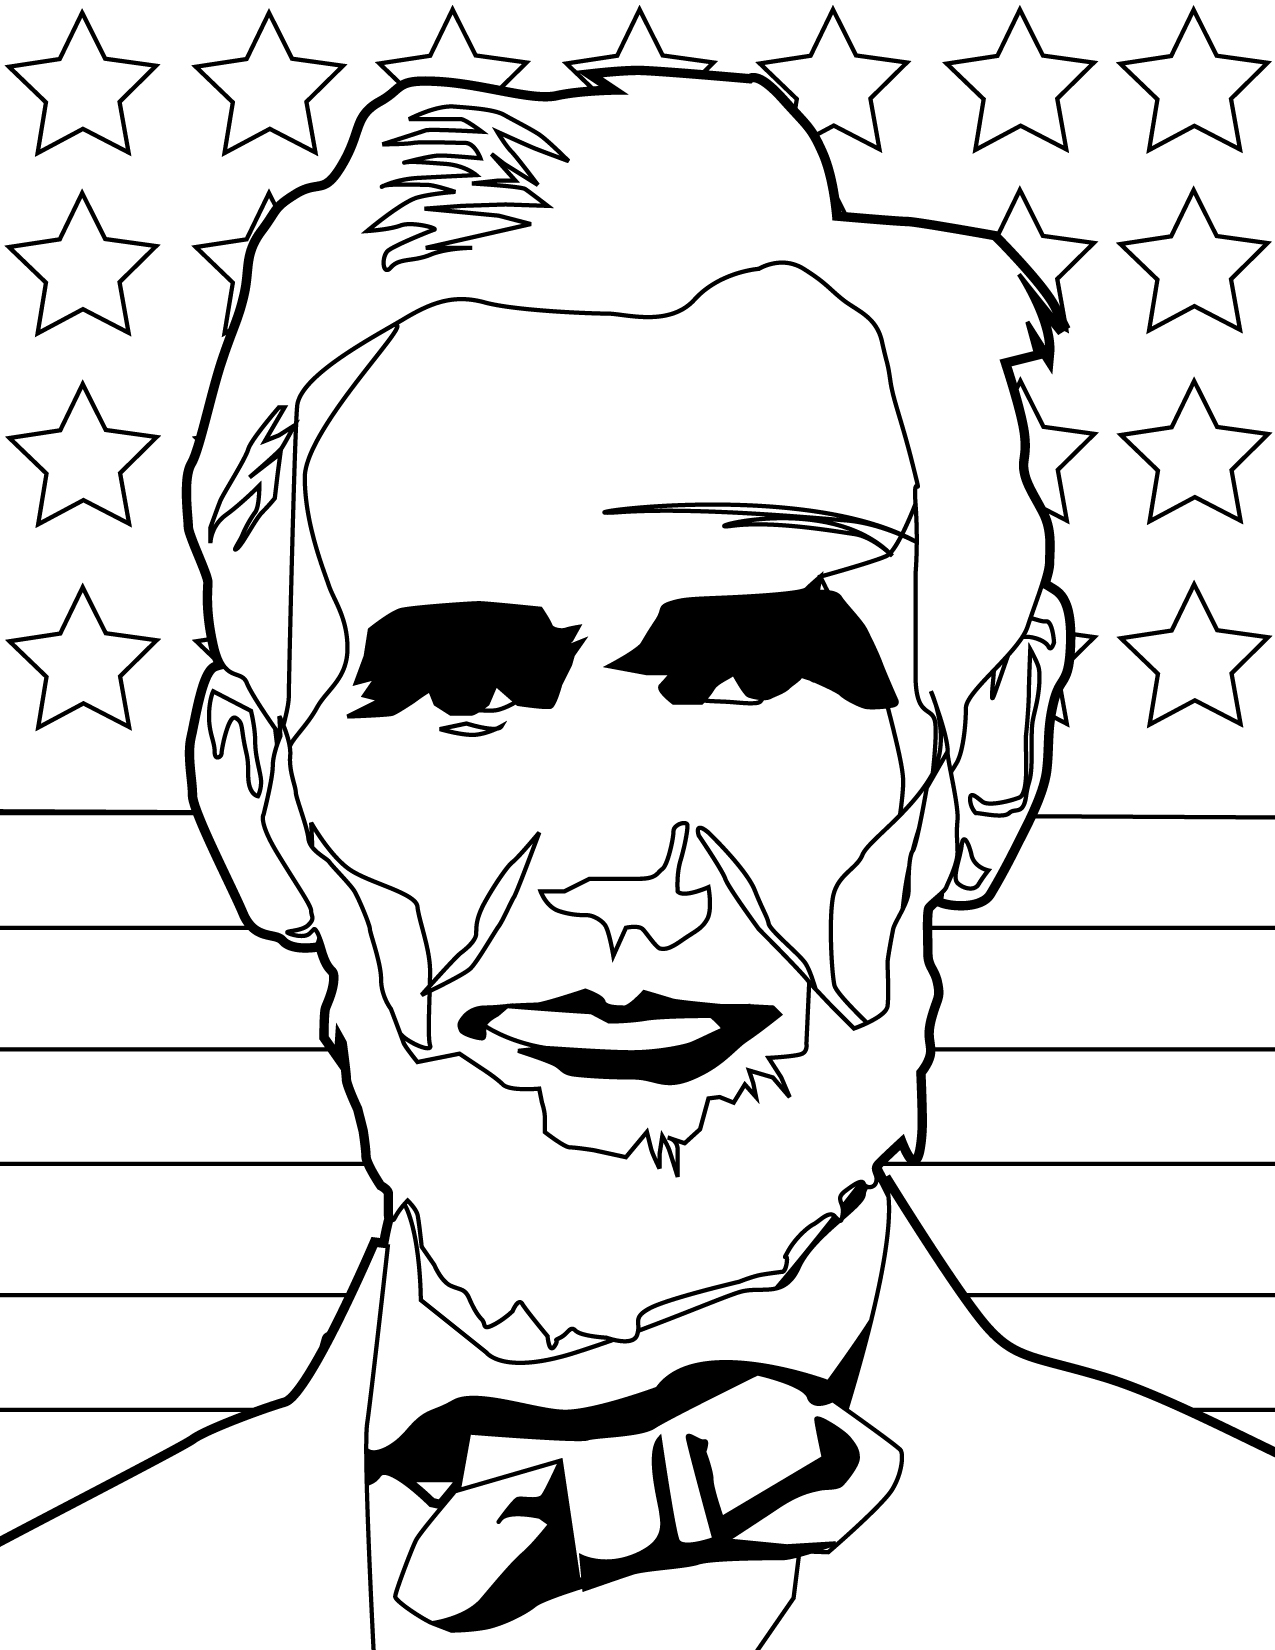 abraham lincoln hat coloring pages - photo#33